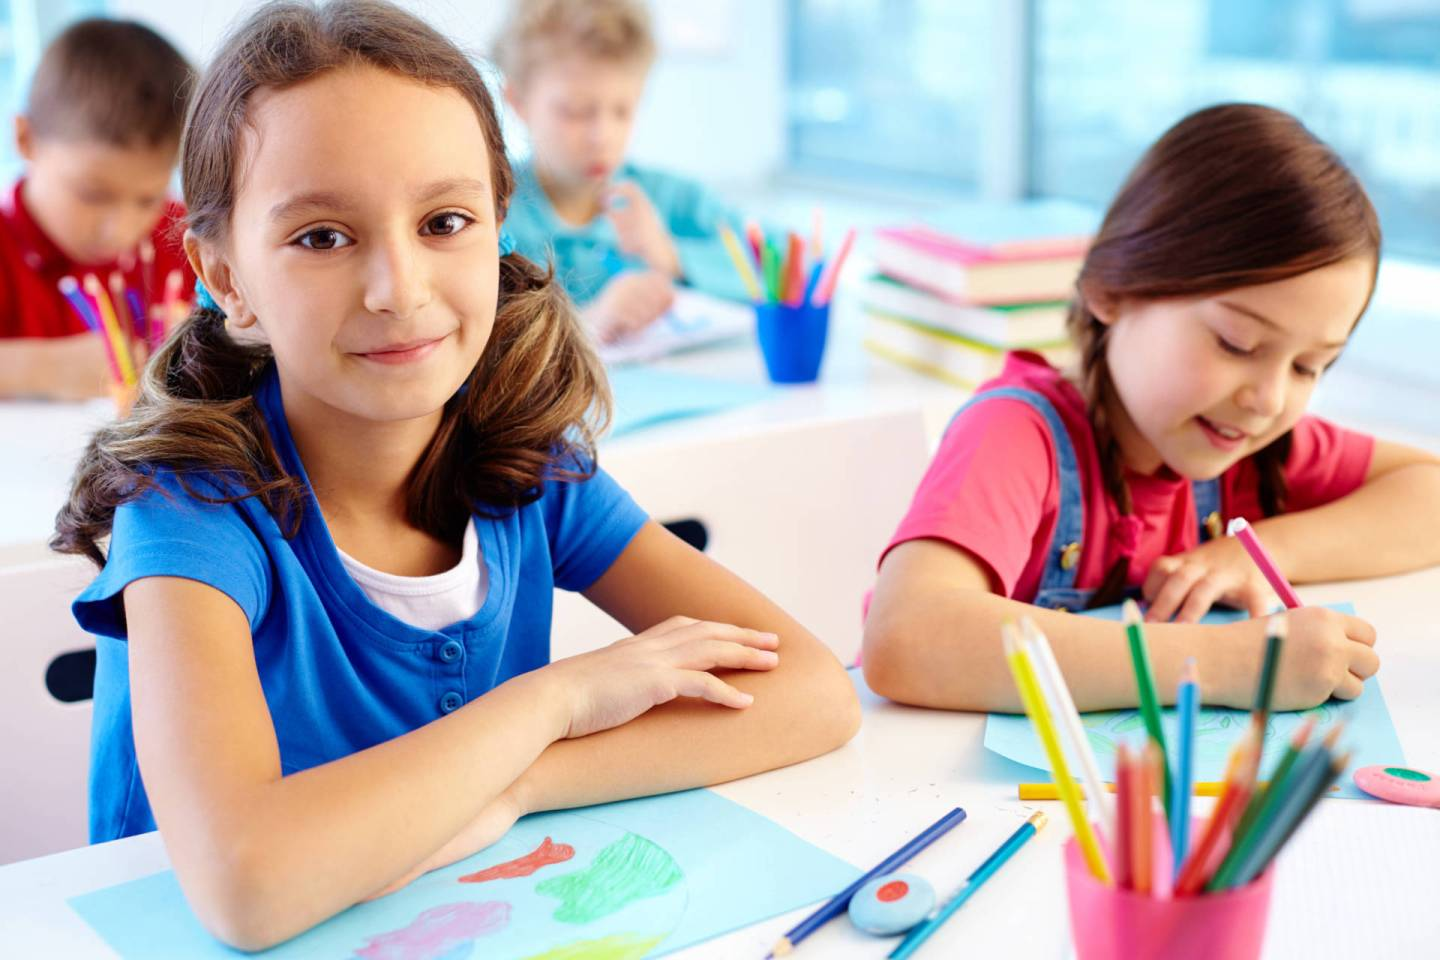 5 Ways to Make Your Kids Valuable in Their School Community